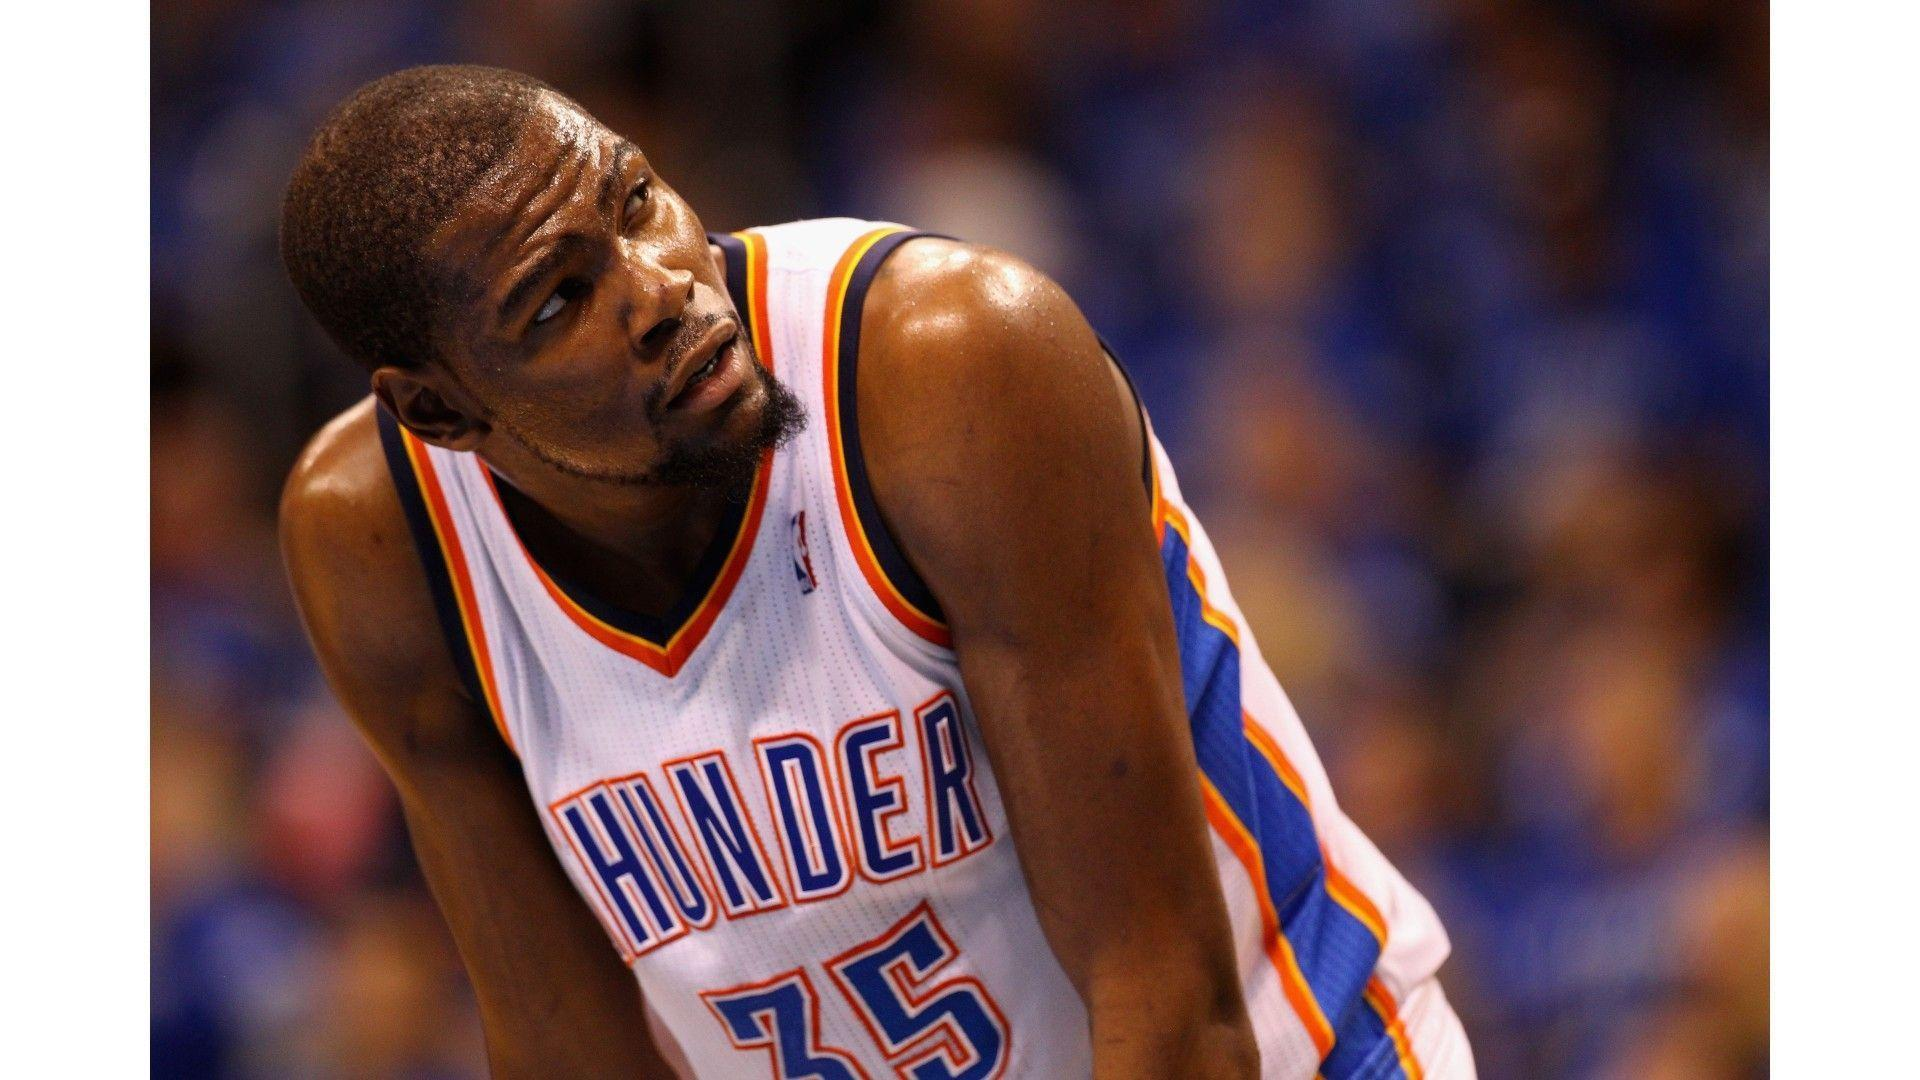 kevin durant wallpapers 2016 hd wallpaper cave